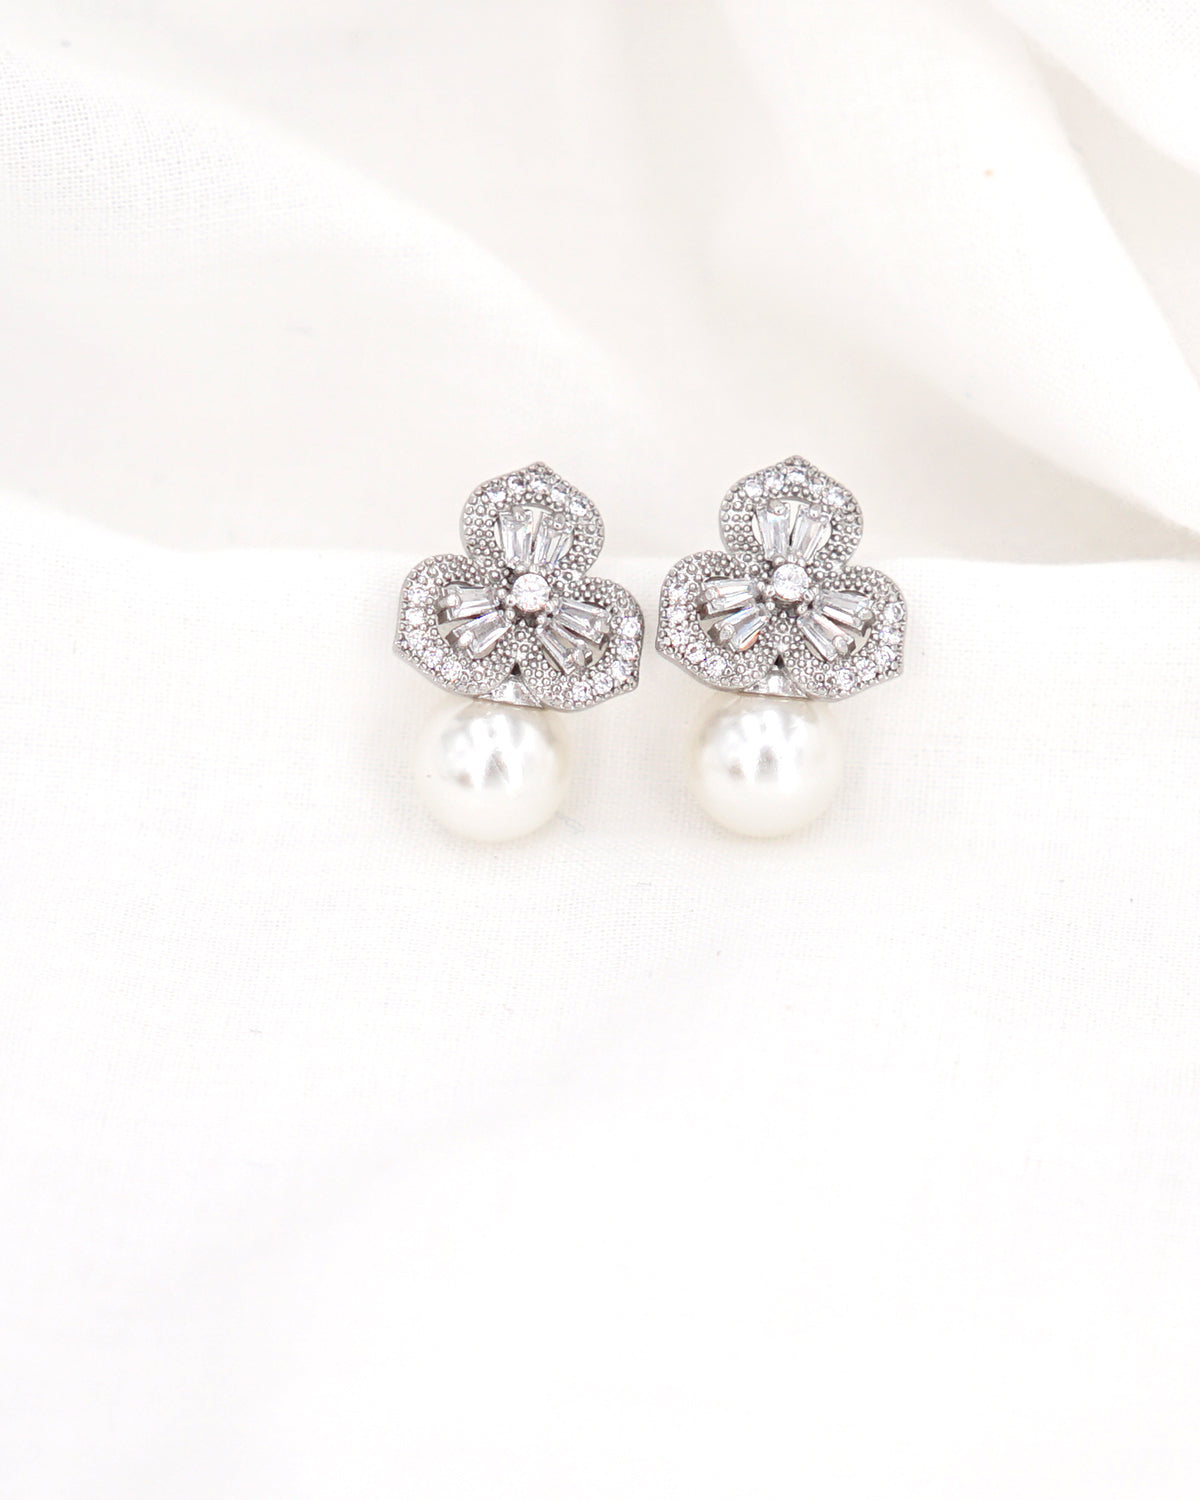 Silver Floral Stud Earrings